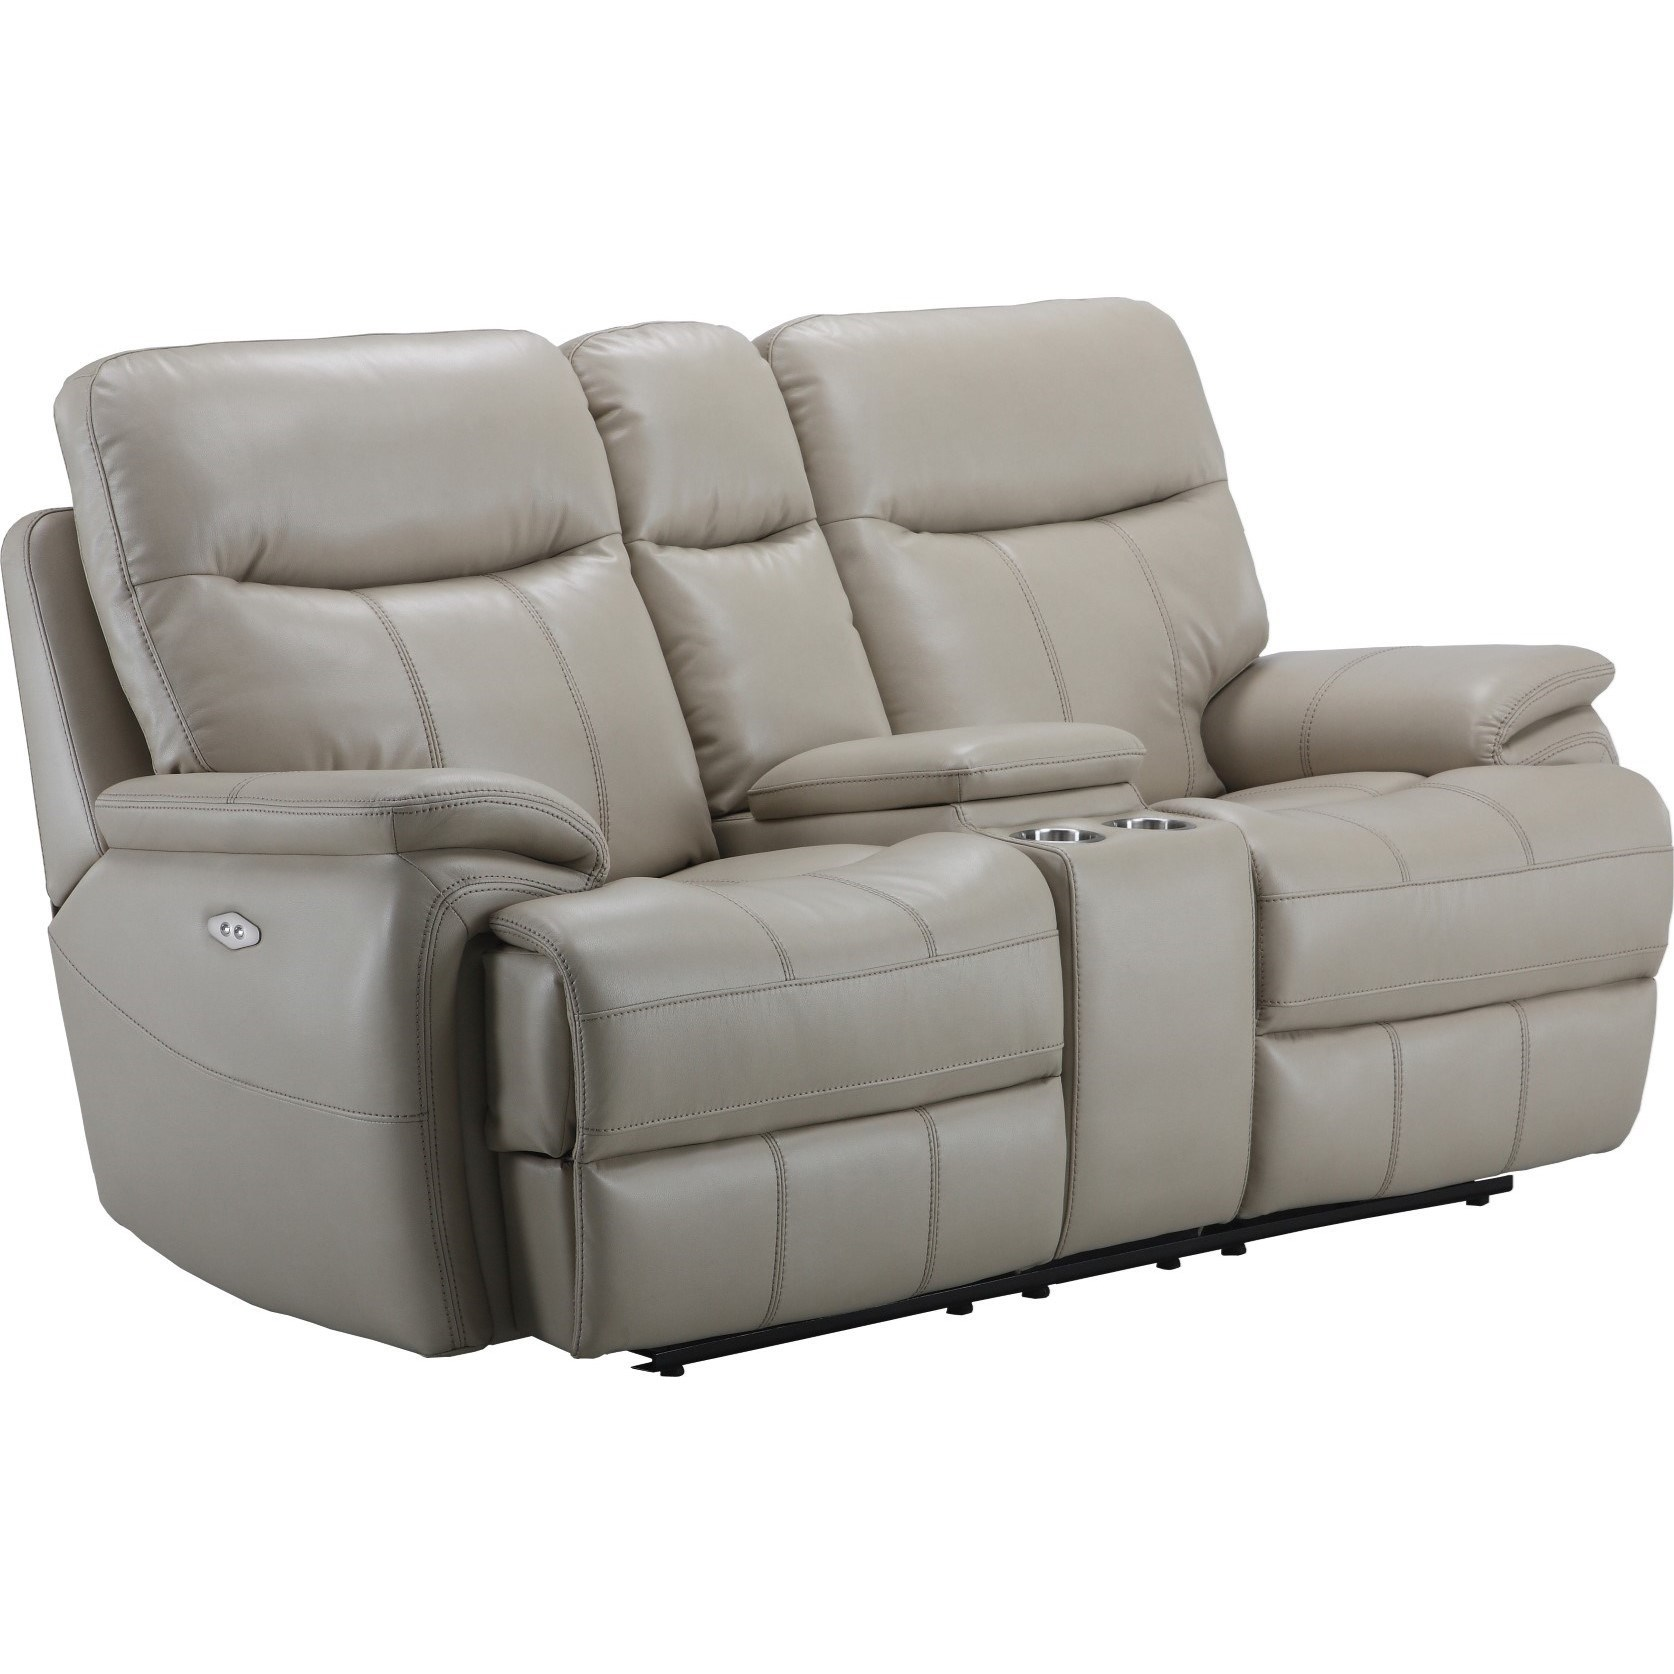 power reclining sofa with cup holders leopard print bed parker living dylan mdyl 822cph cre dual recliner